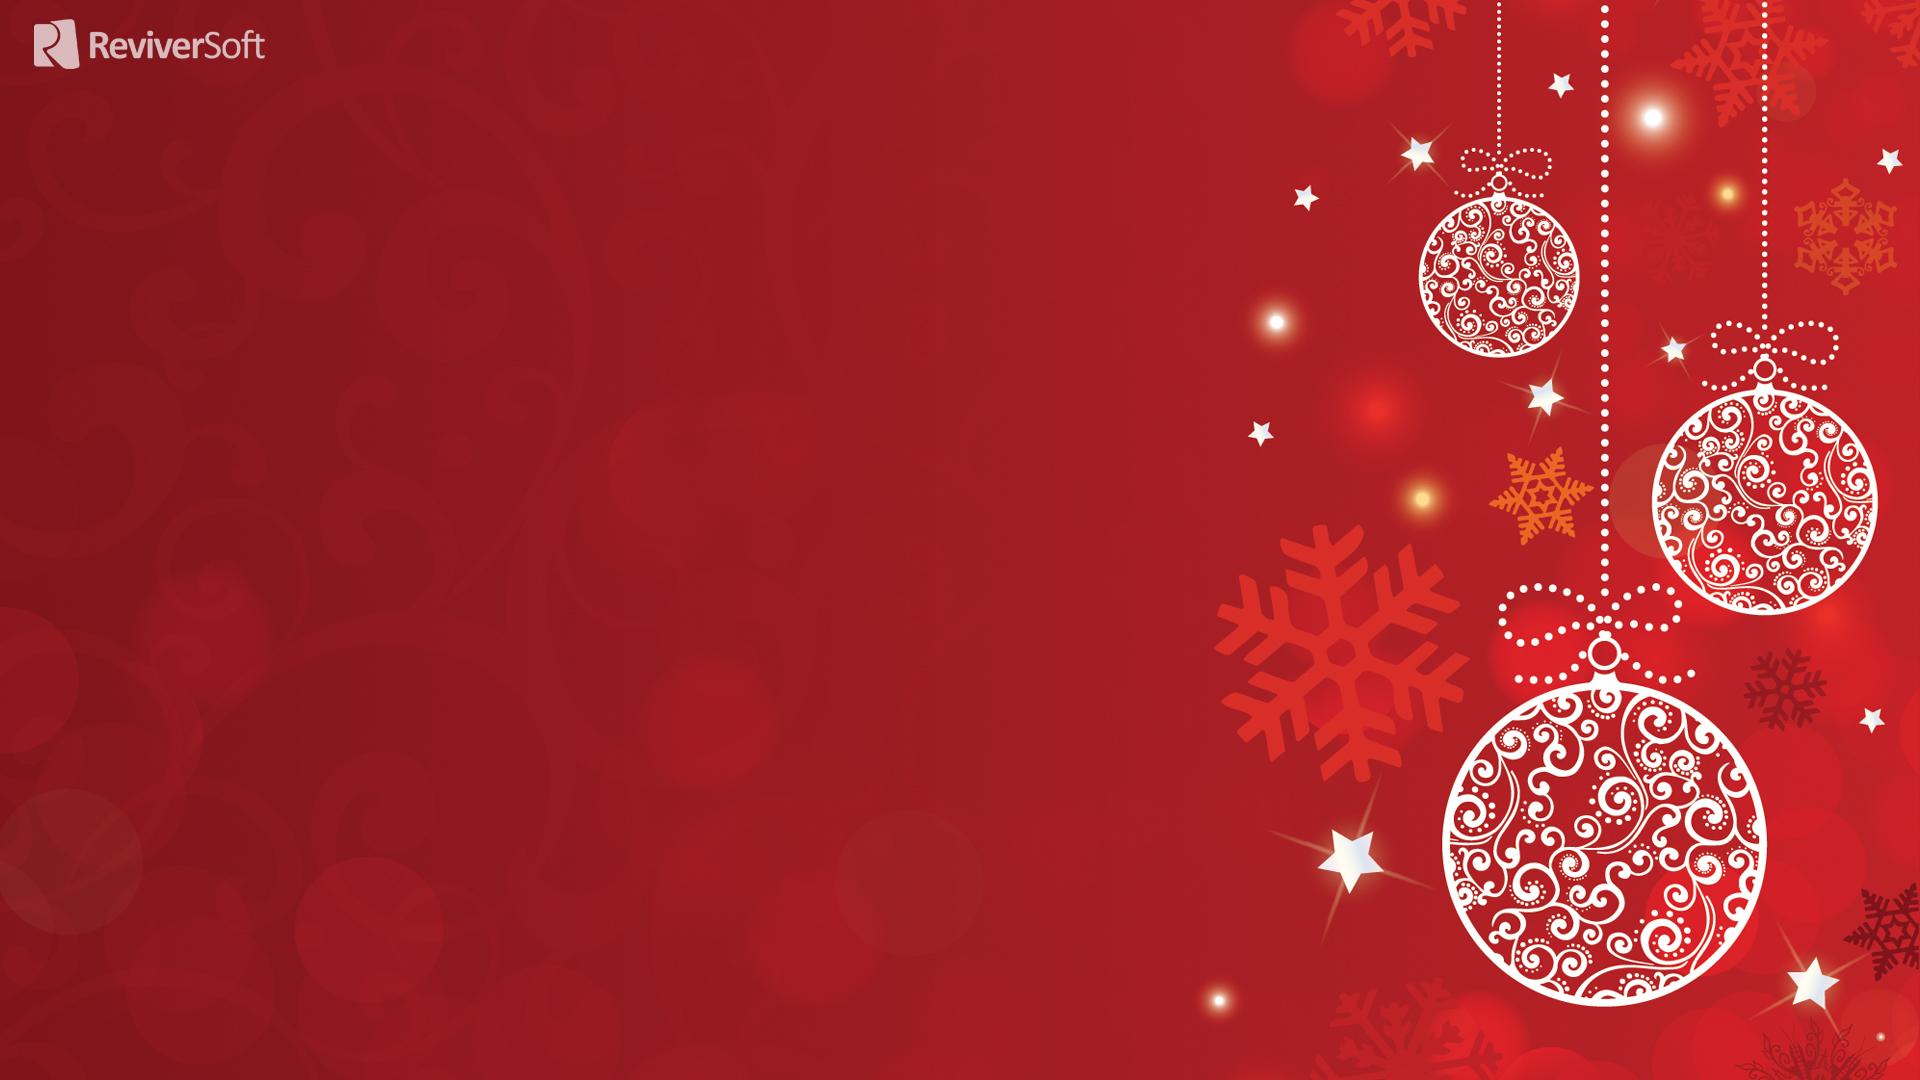 Christmas wallpapers White Christmas decorations on a red background 1920x1080